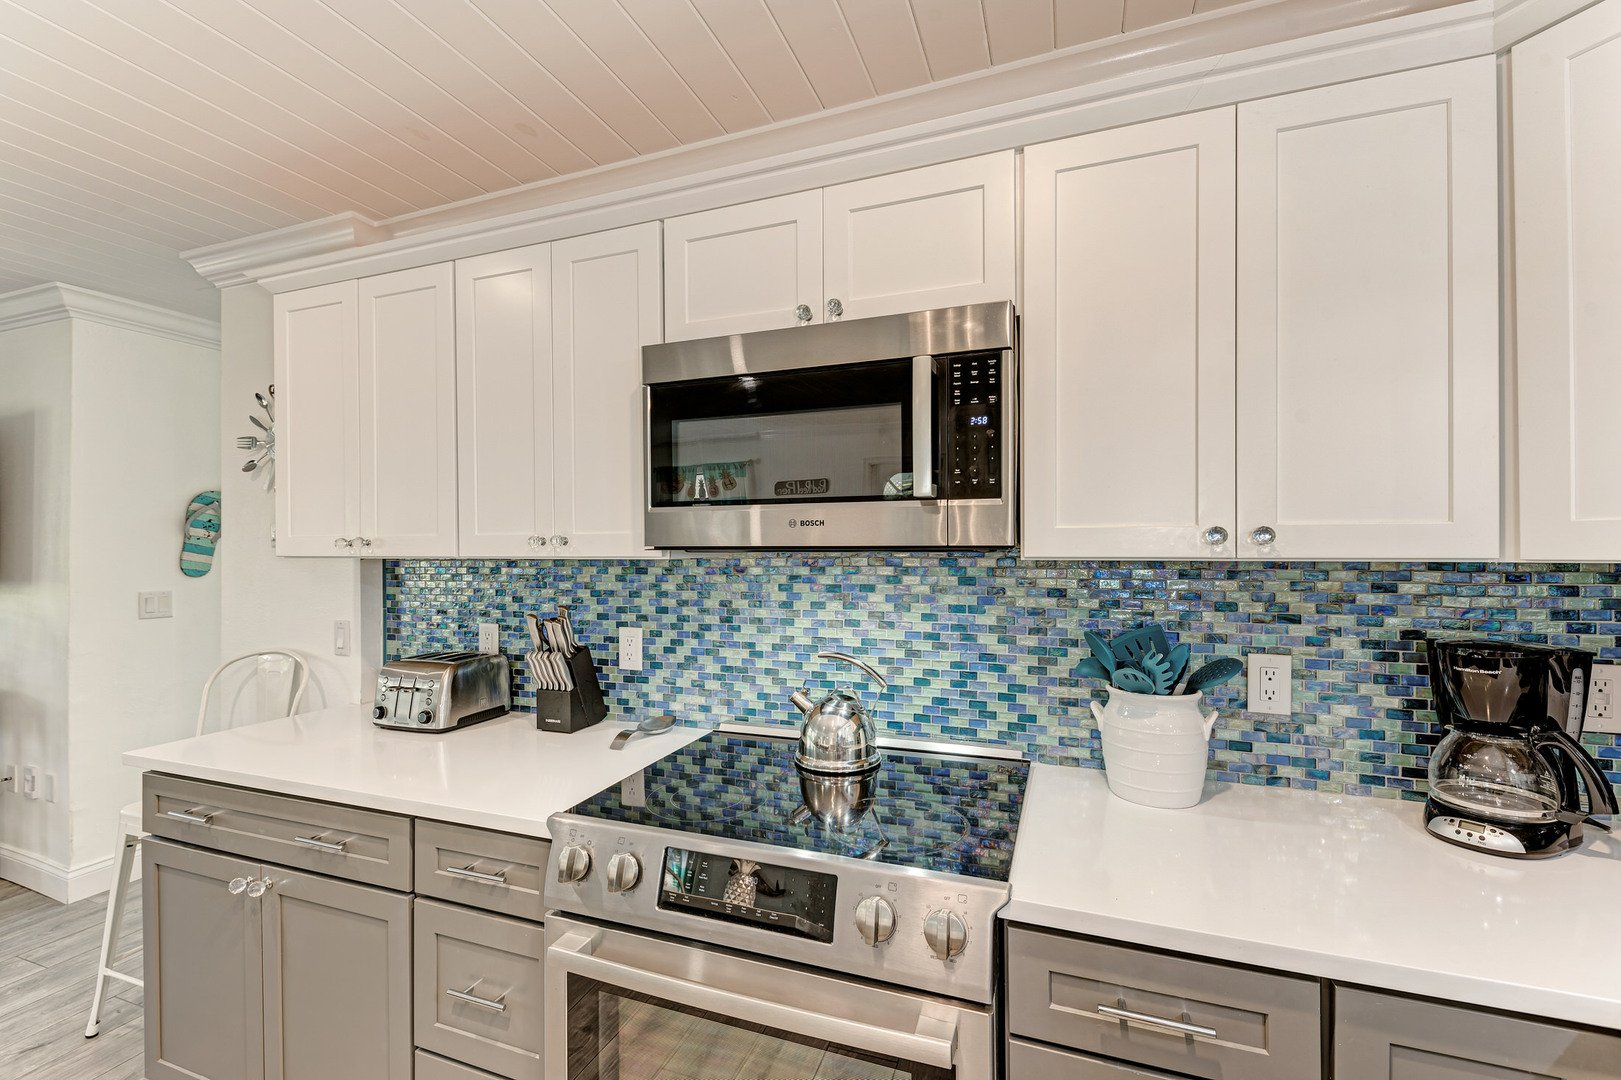 Barefoot Bungalow kitchen stove & microwave